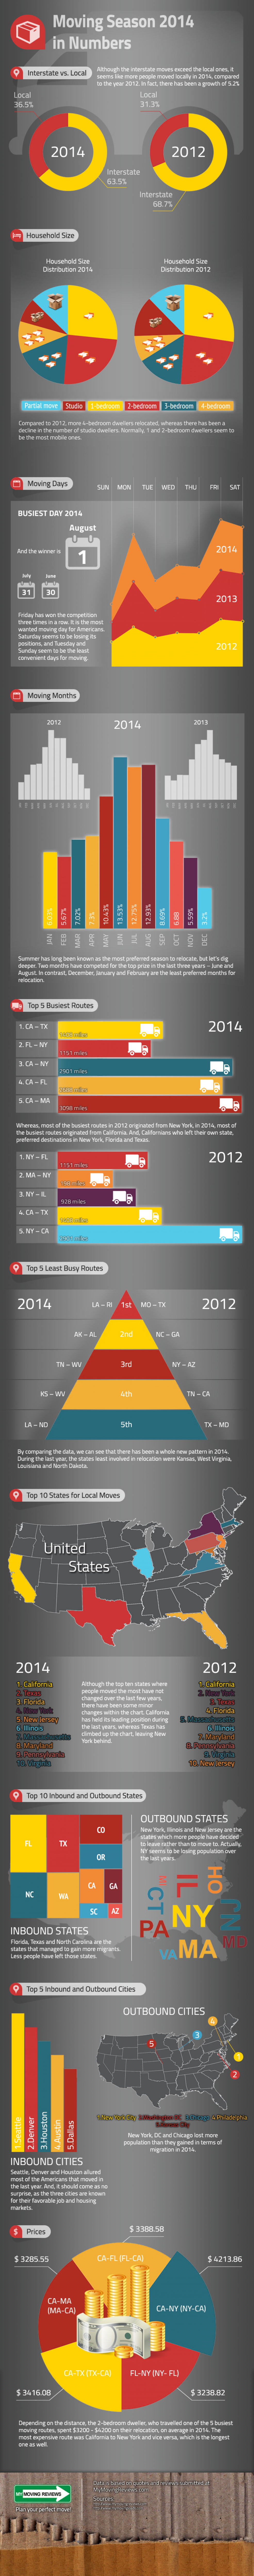 Moving Season 2014 in Numbers Infographic